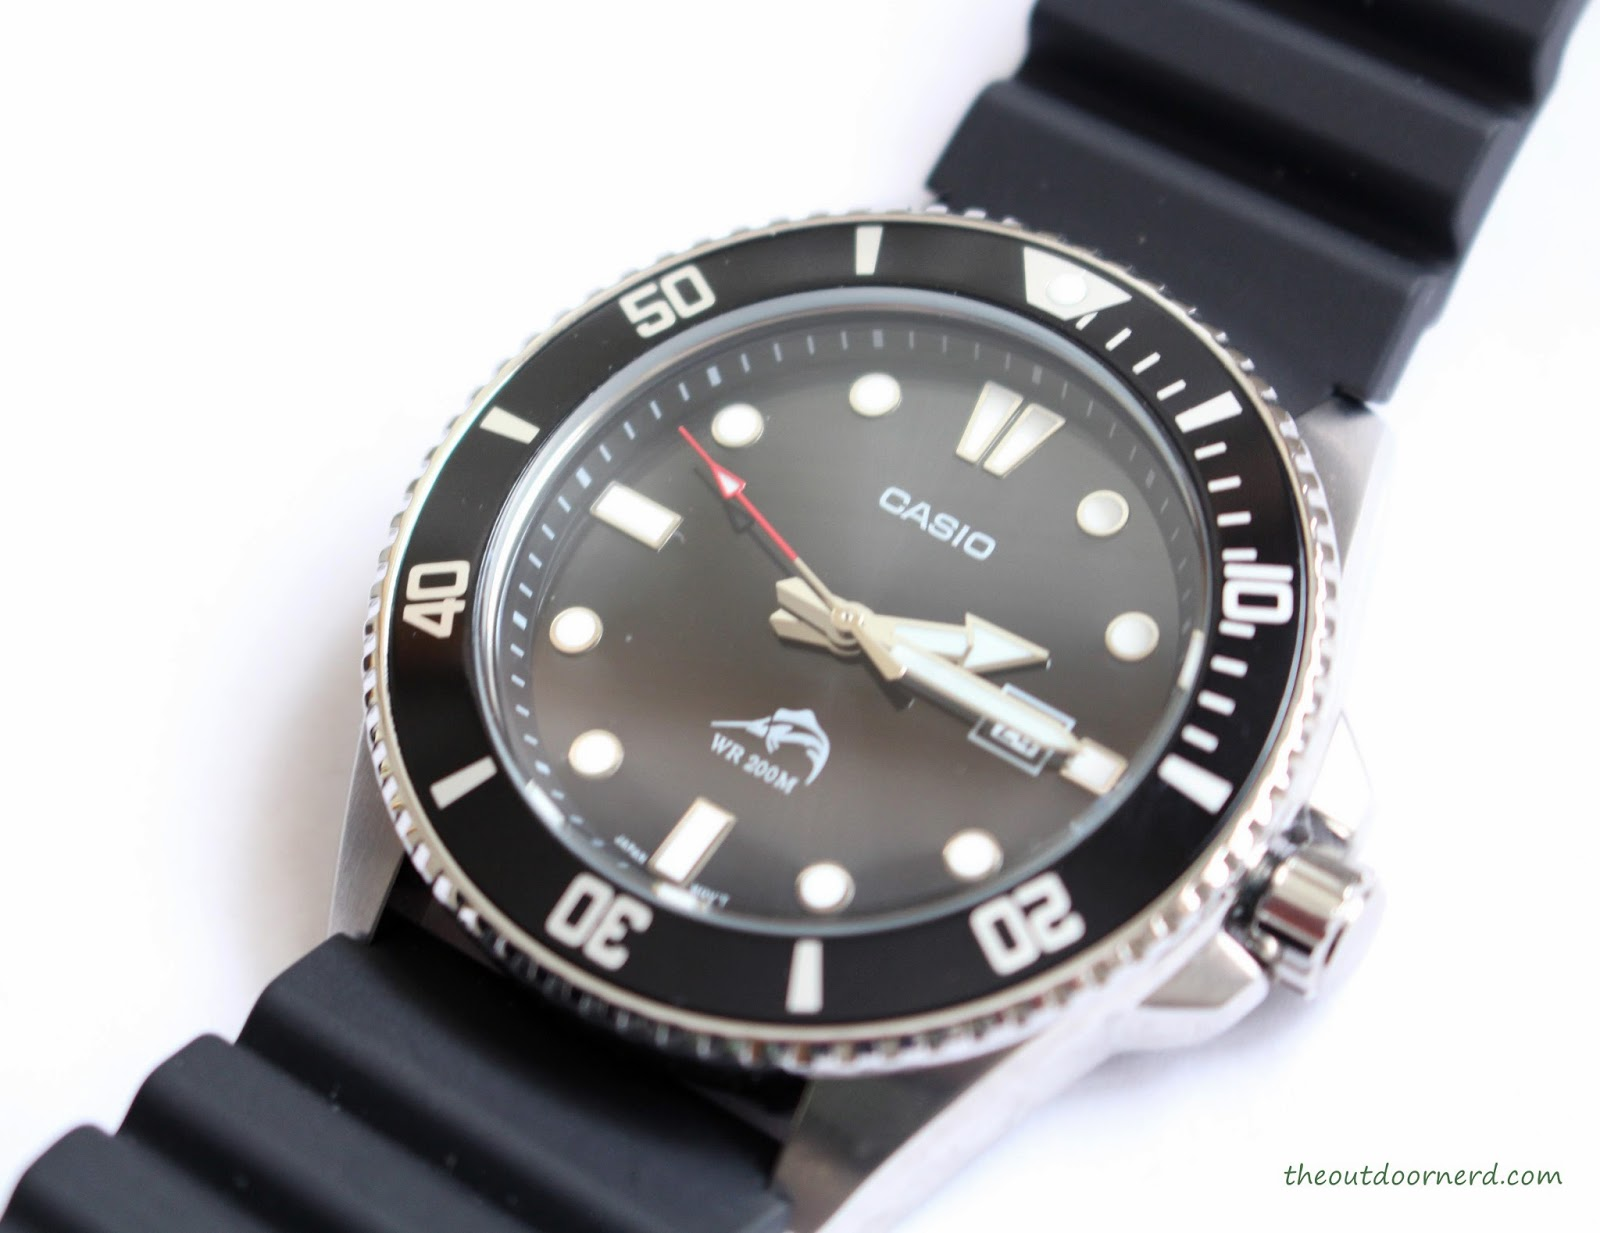 Casio MDV106-1A Diver's Watch Product Link